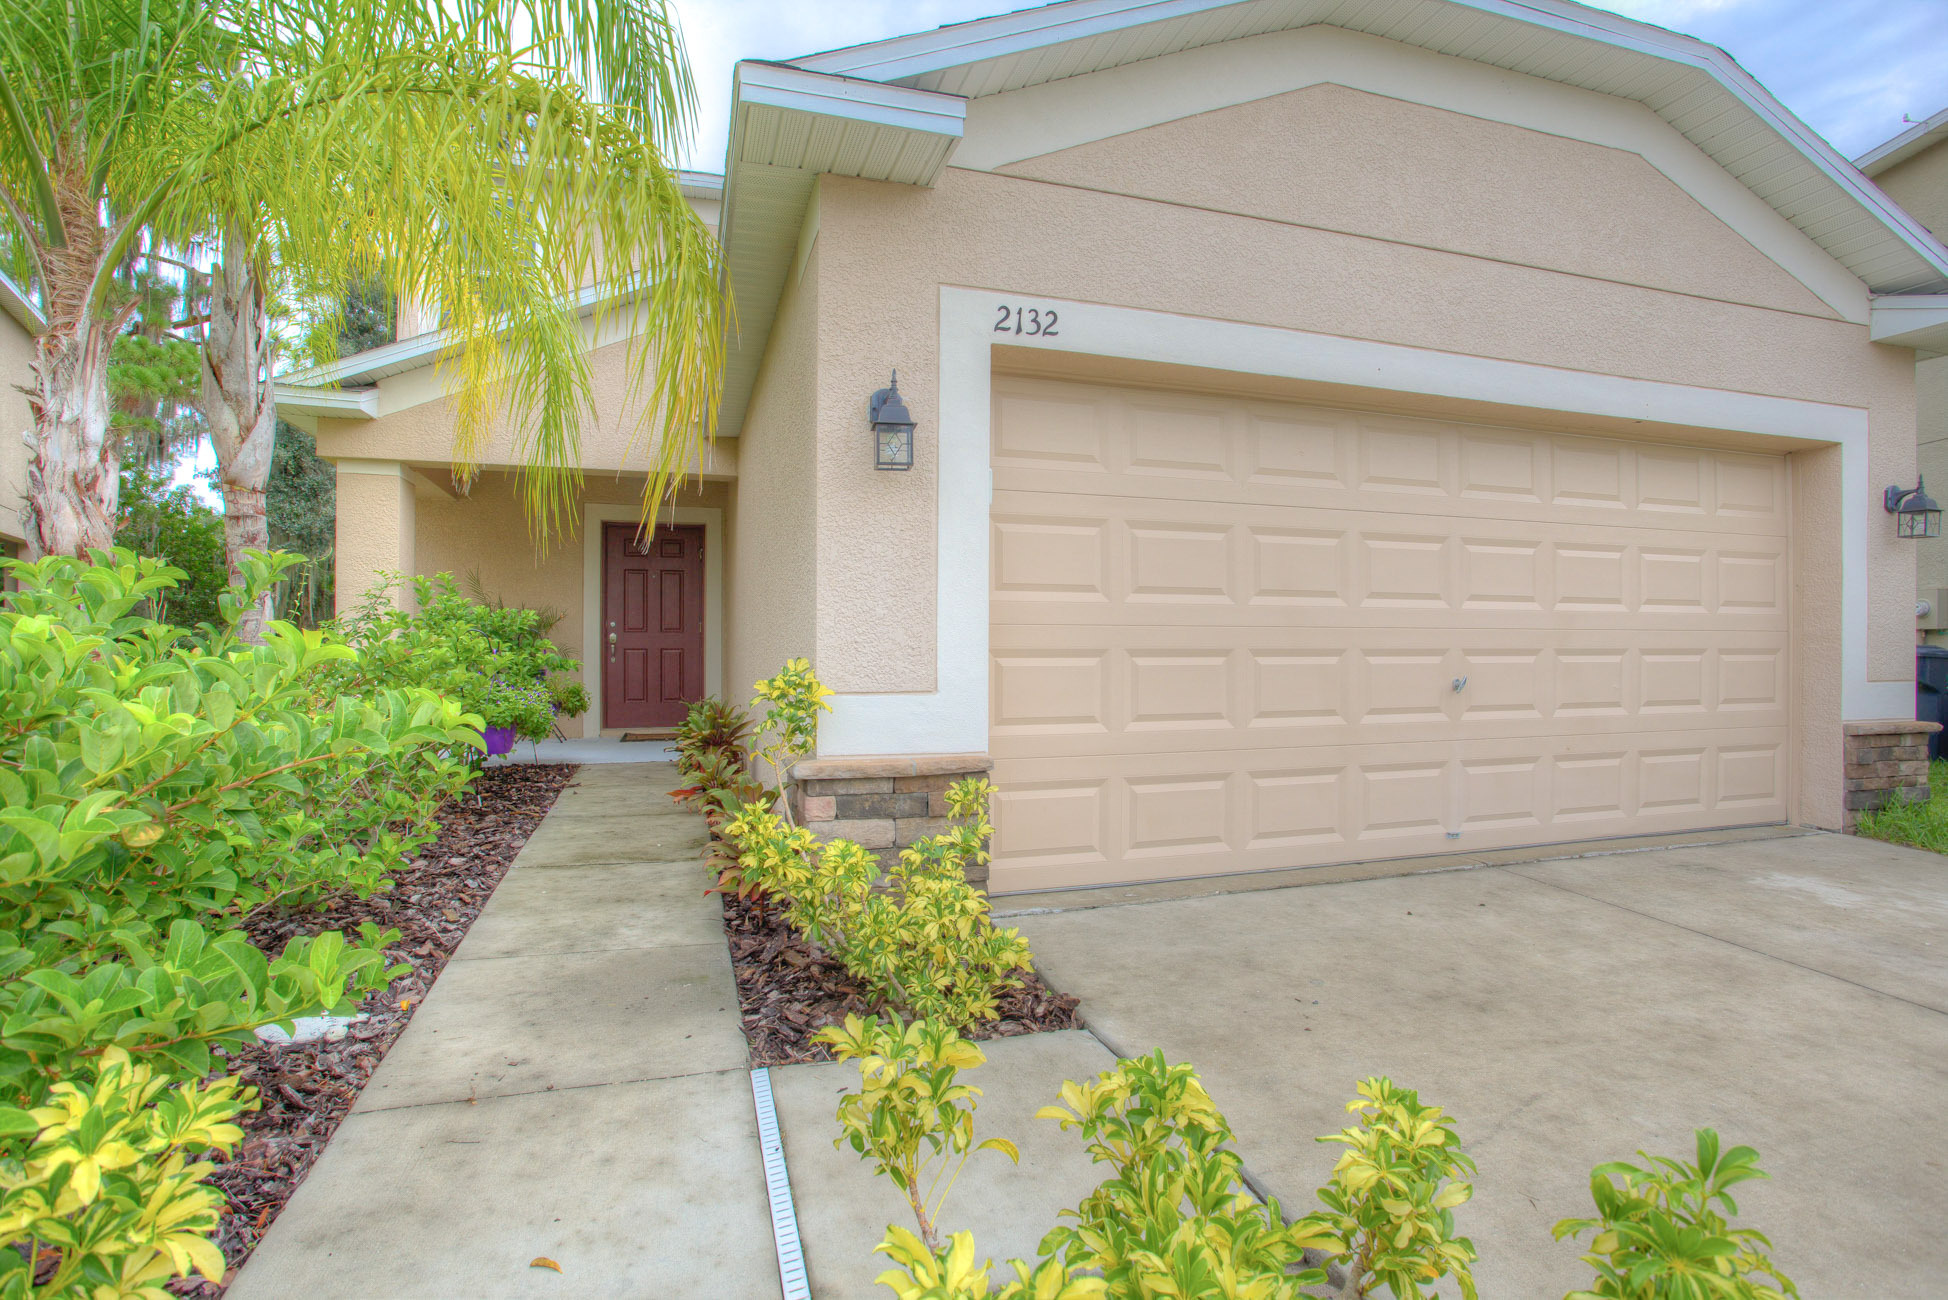 ruskin home for sale 2132 richwood pike dr ruskin fl